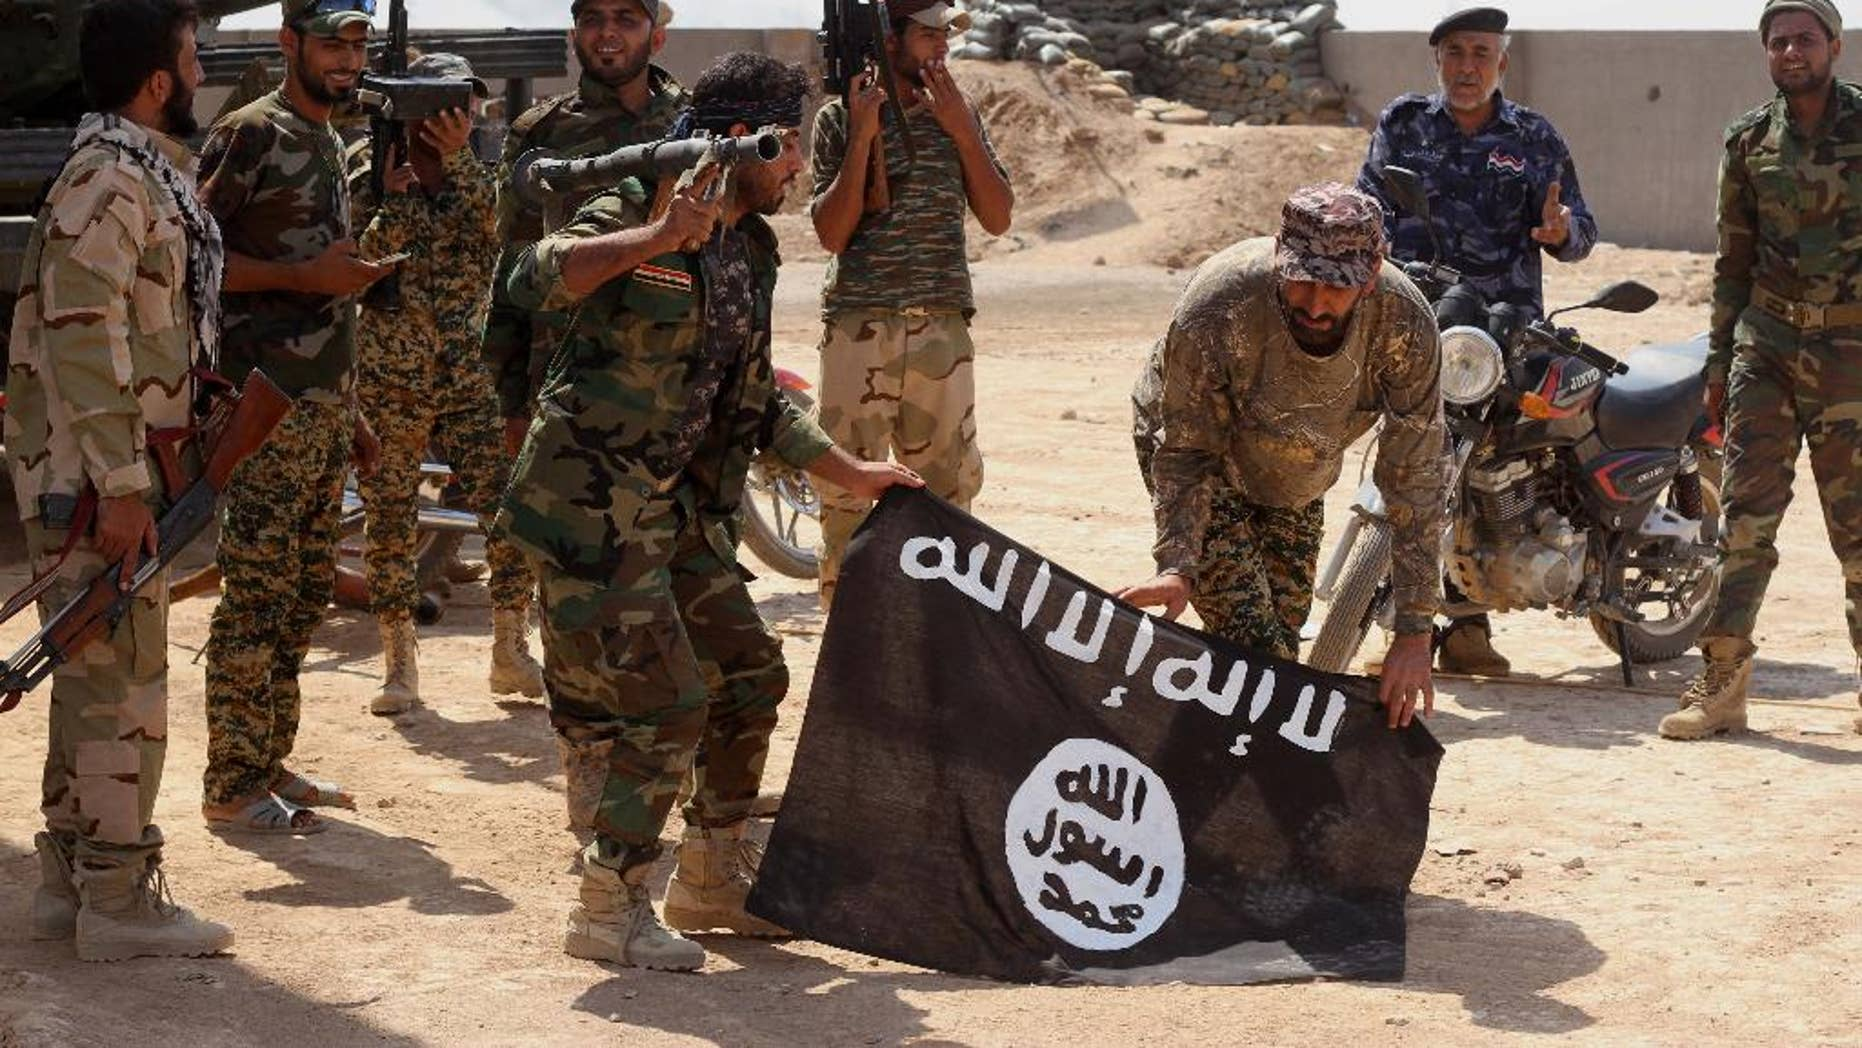 Sept. 1, 2014: Iraqi security forces hold a flag of the Islamic State group they captured during an operation outside Amirli, some 105 miles north of Baghdad, Iraq. (AP)